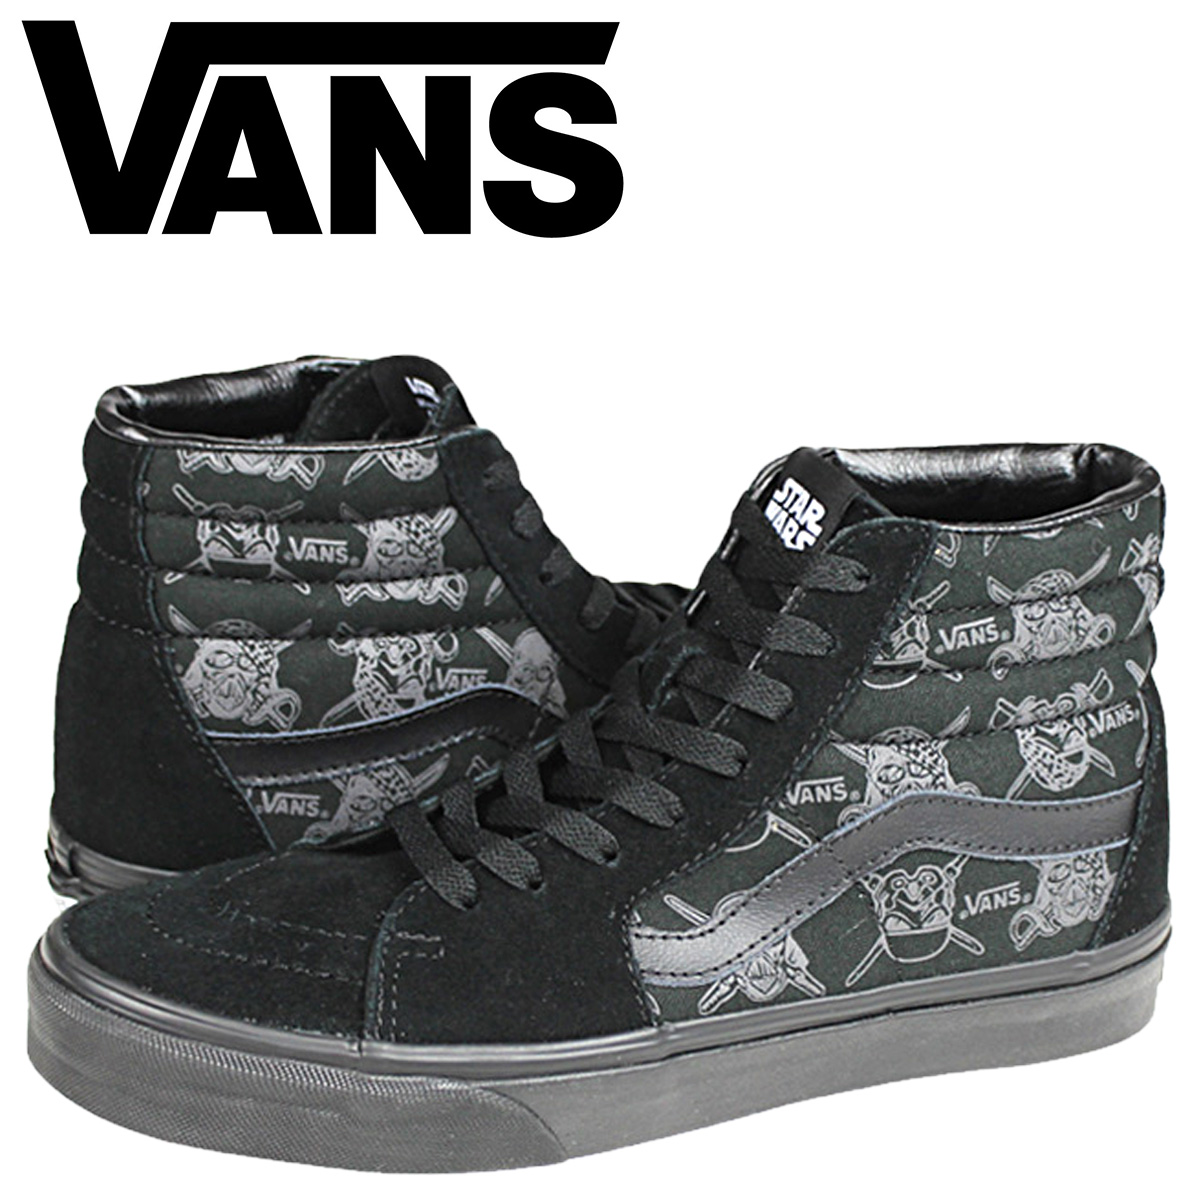 Star Wars Sneakers >> Vans Vans Star Wars Sneakers Collaboration Starwars Sk8 Hi Vn 0ts9ex8 Men Gap Dis Shoes Black